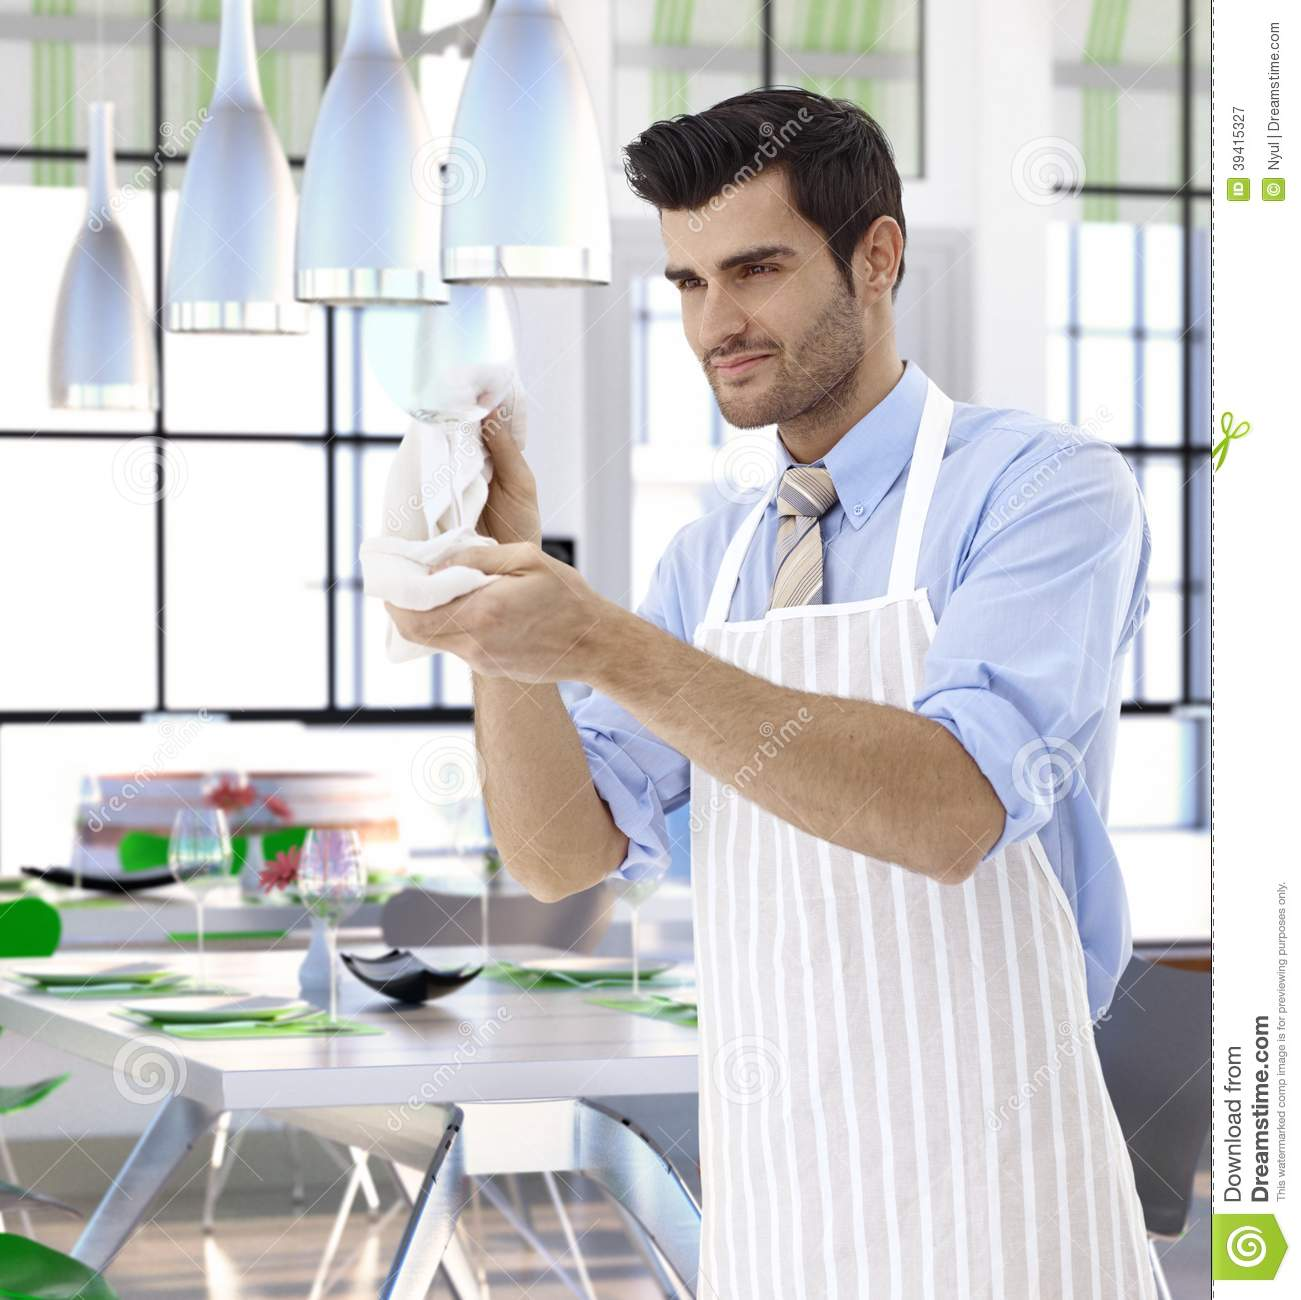 People Cleaning Services : Waiter cleaning wineglass at restaurant stock photo